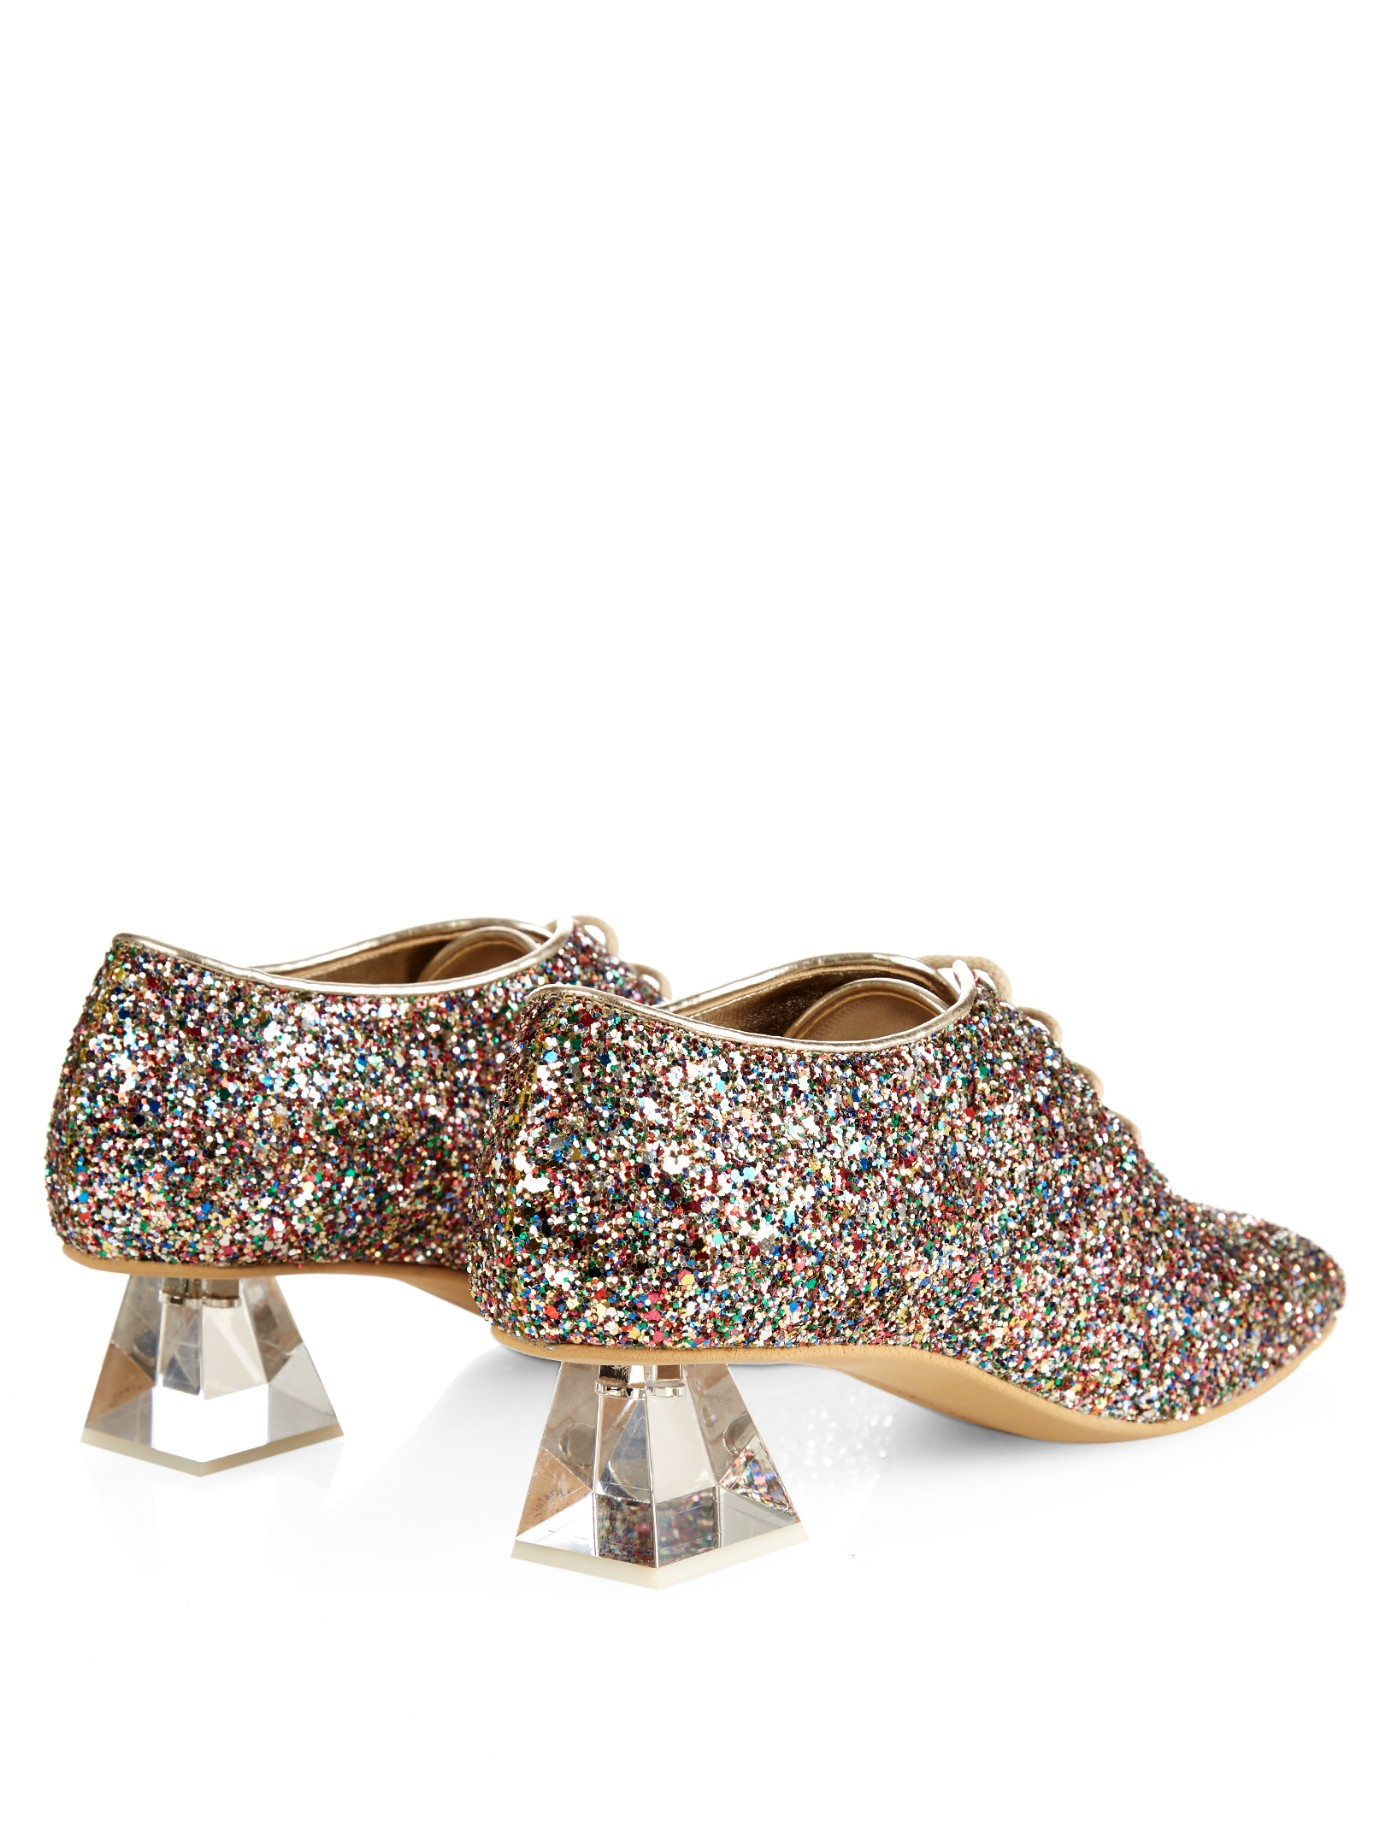 137254174d12 Lyst - Stella McCartney Glitter Lace-up Shoes